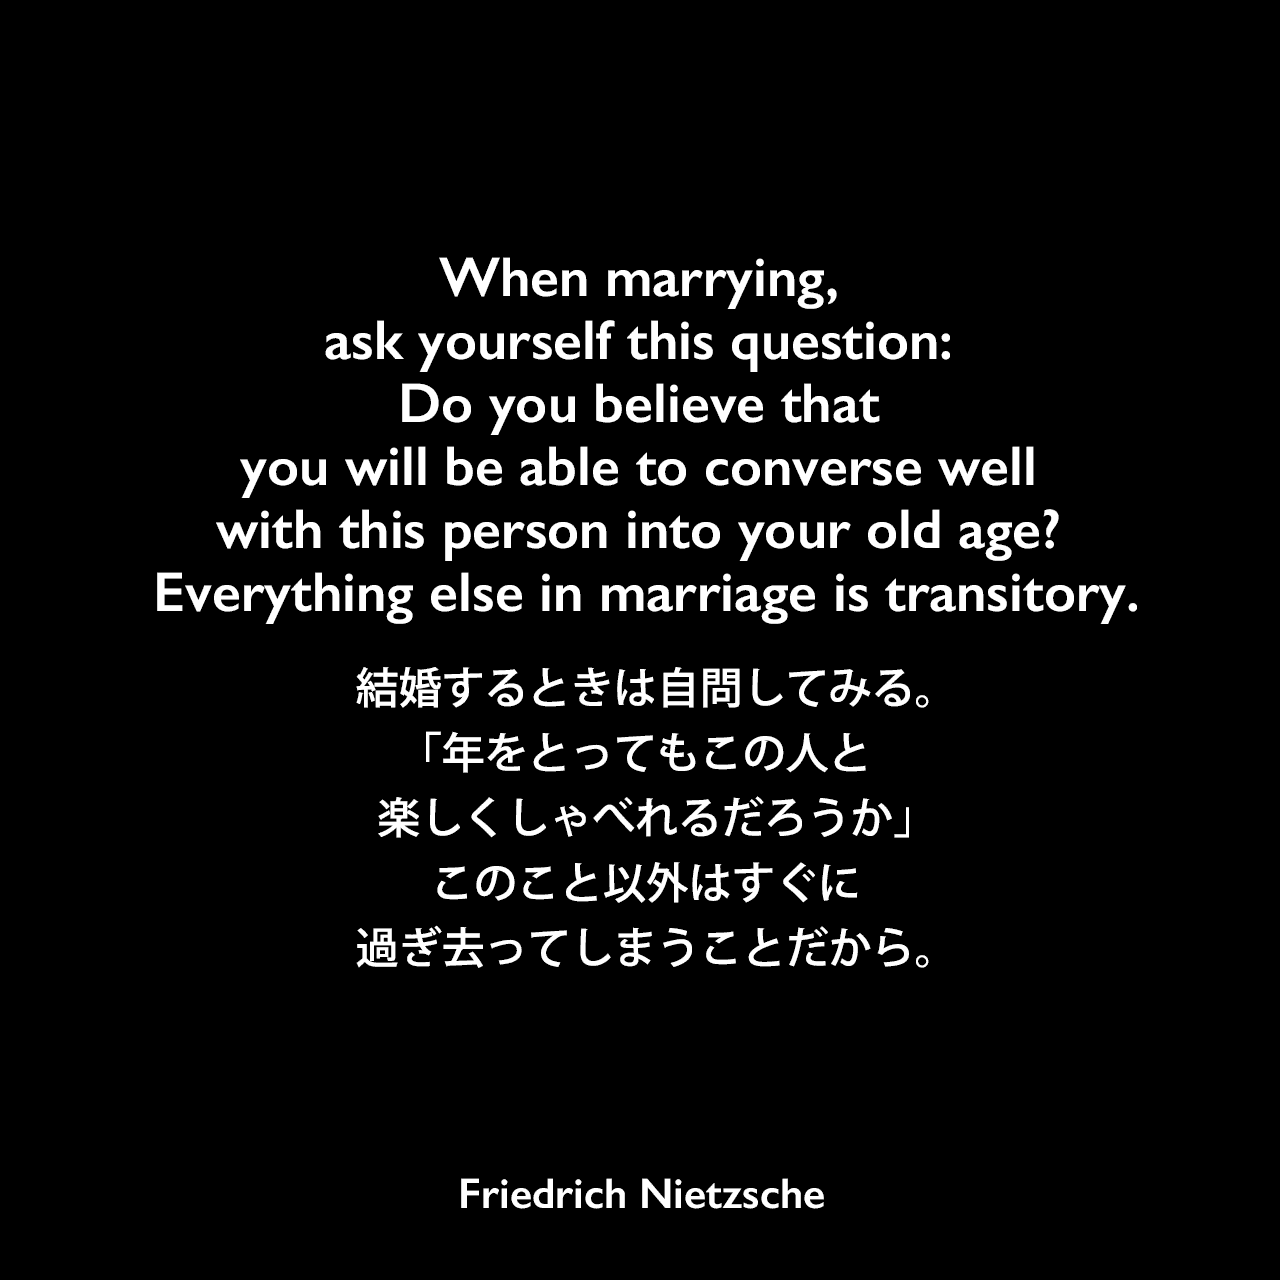 When marrying, ask yourself this question: Do you believe that you will be able to converse well with this person into your old age? Everything else in marriage is transitory.結婚するときは自問してみる。「年をとってもこの人と楽しくしゃべれるだろうか」このこと以外はすぐに過ぎ去ってしまうことだから。